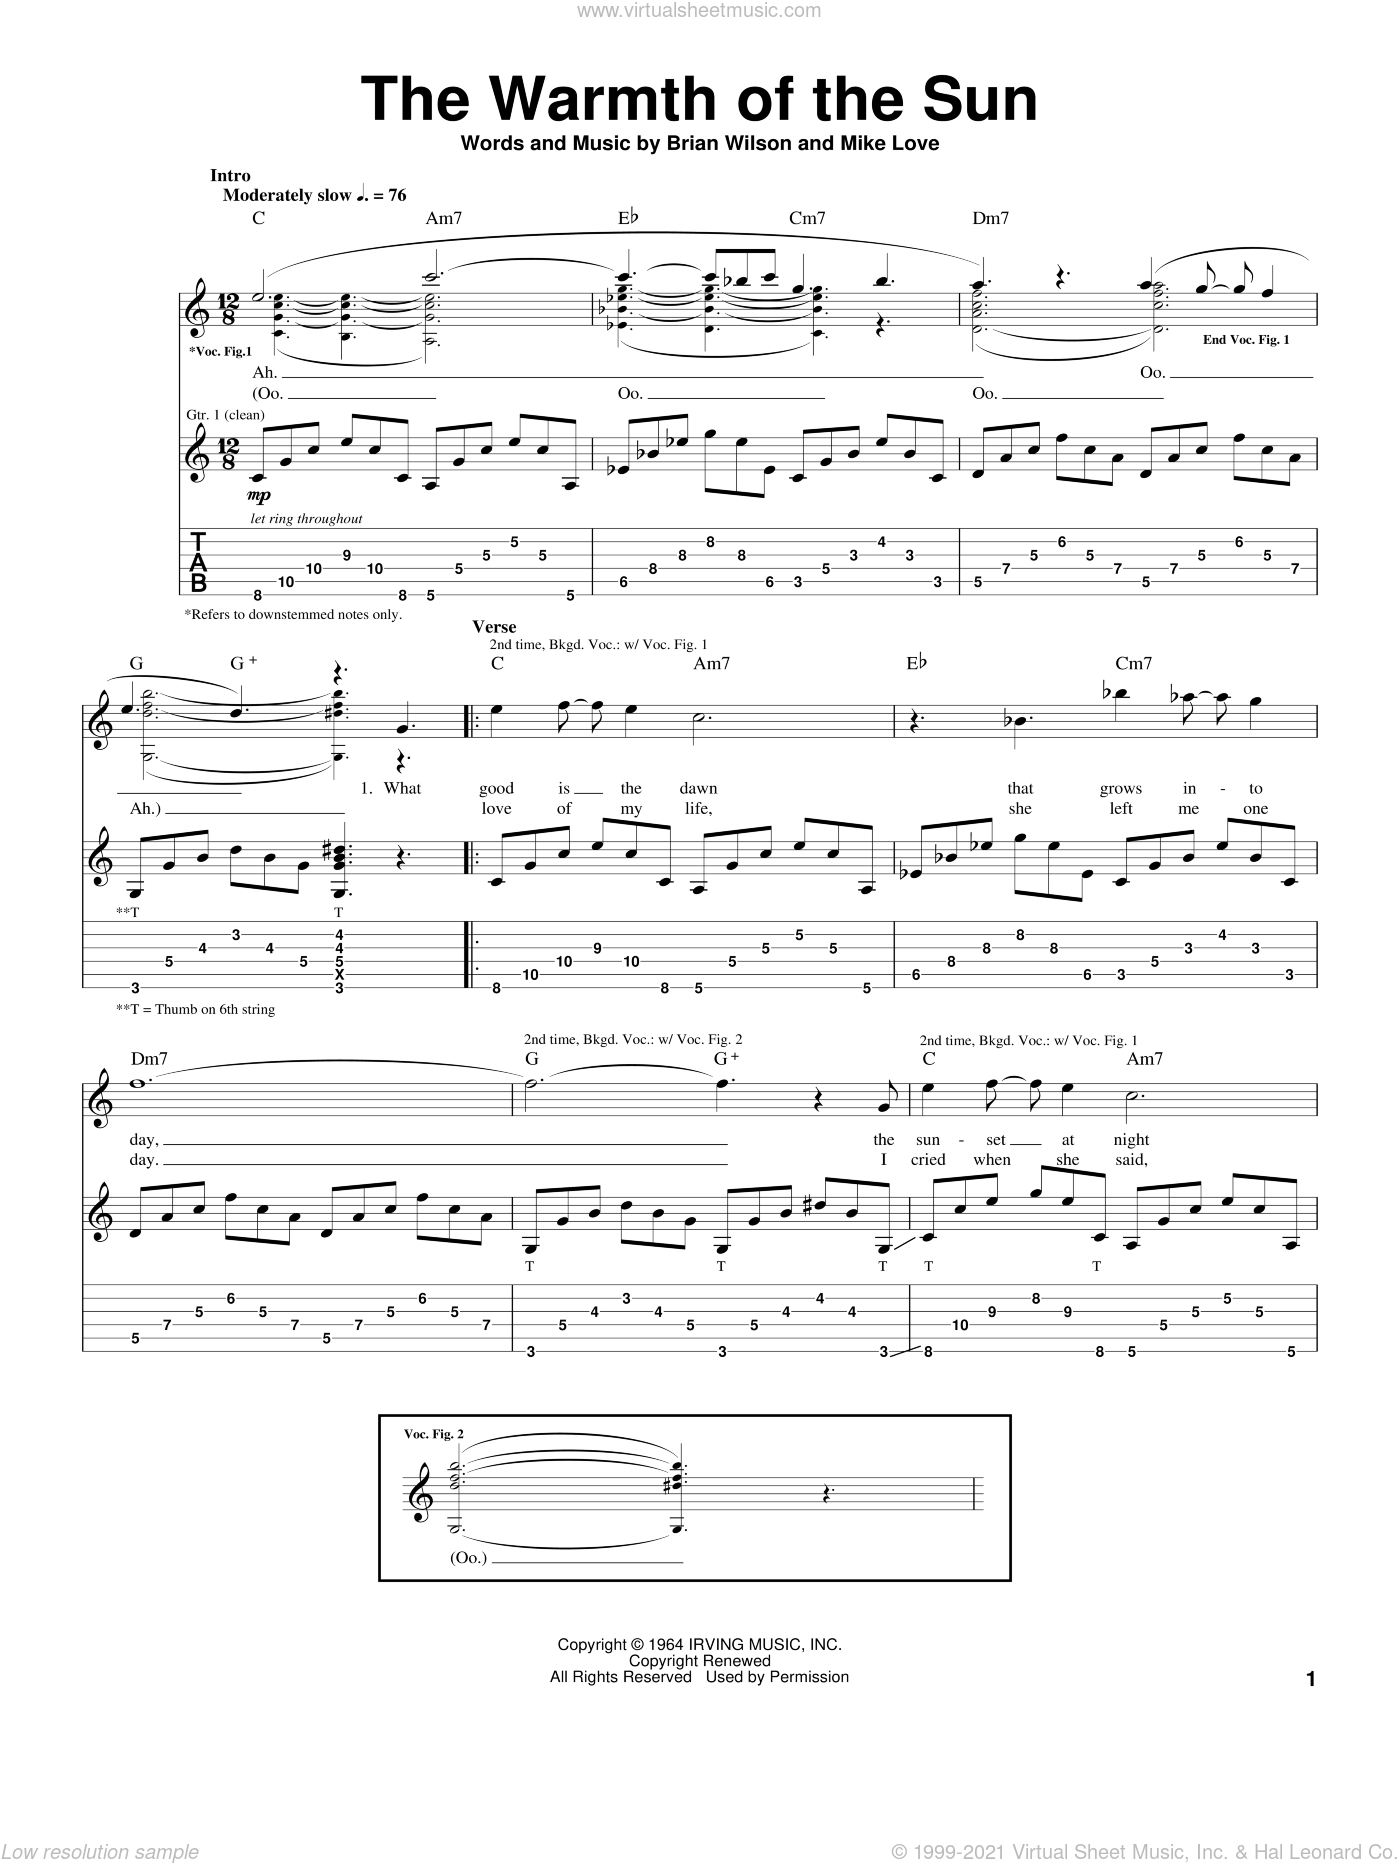 The Warmth Of The Sun sheet music for guitar (tablature) by The Beach Boys, Brian Wilson and Mike Love, intermediate skill level